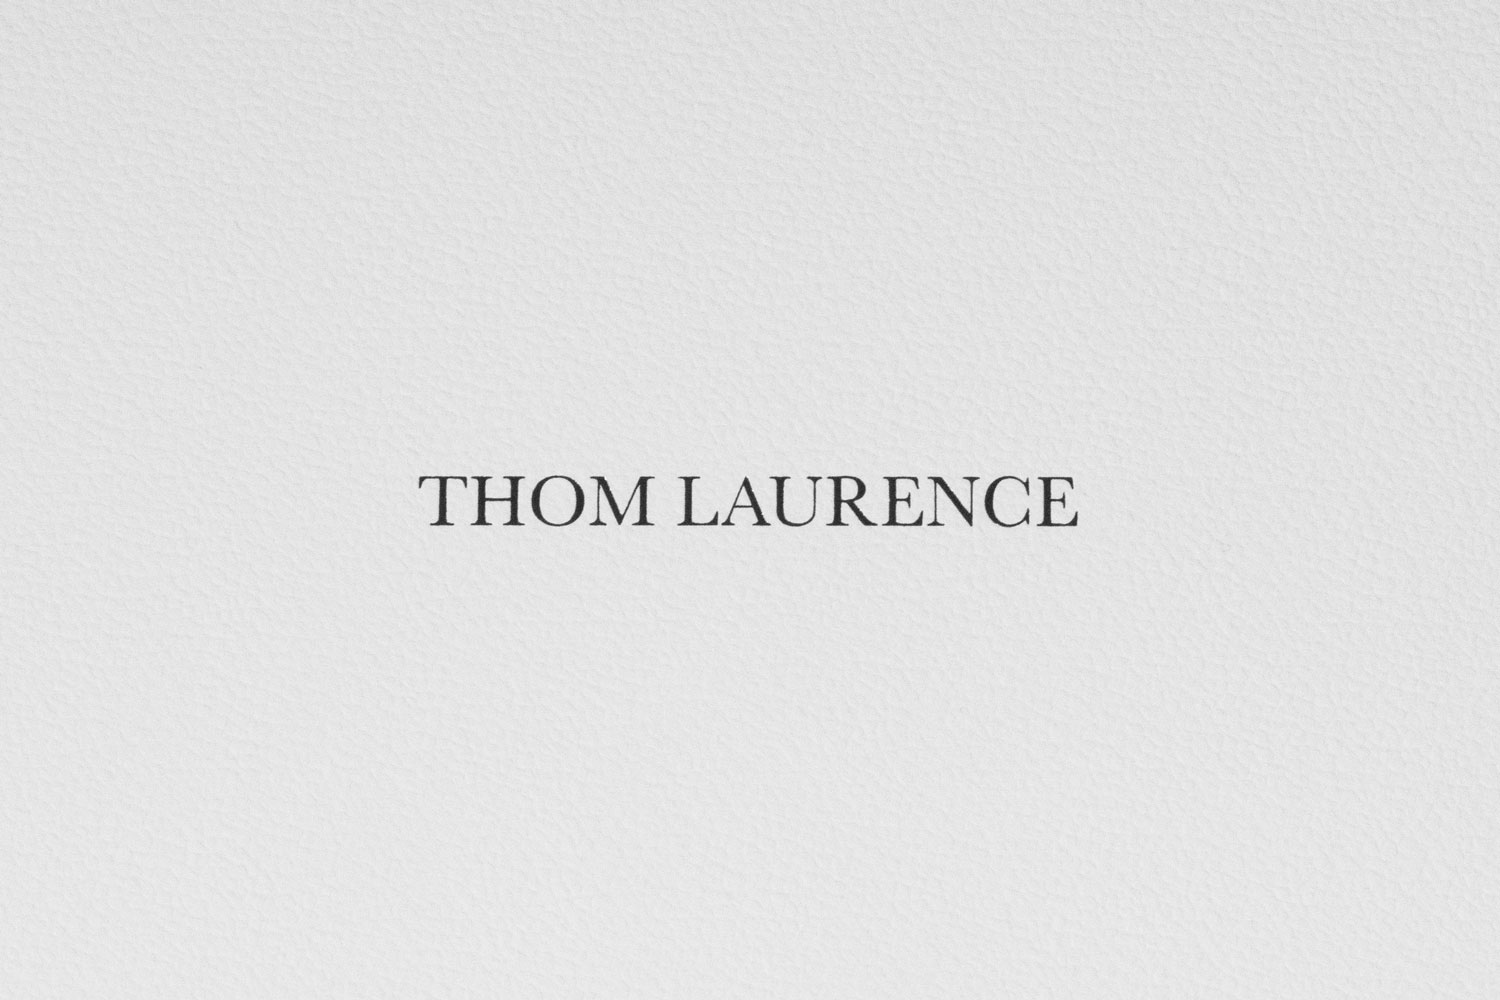 Progress Packaging Thom Laurence Bespoke Luxury Colorplan Embossed Blackfoil Box Manufacture Production Print 02